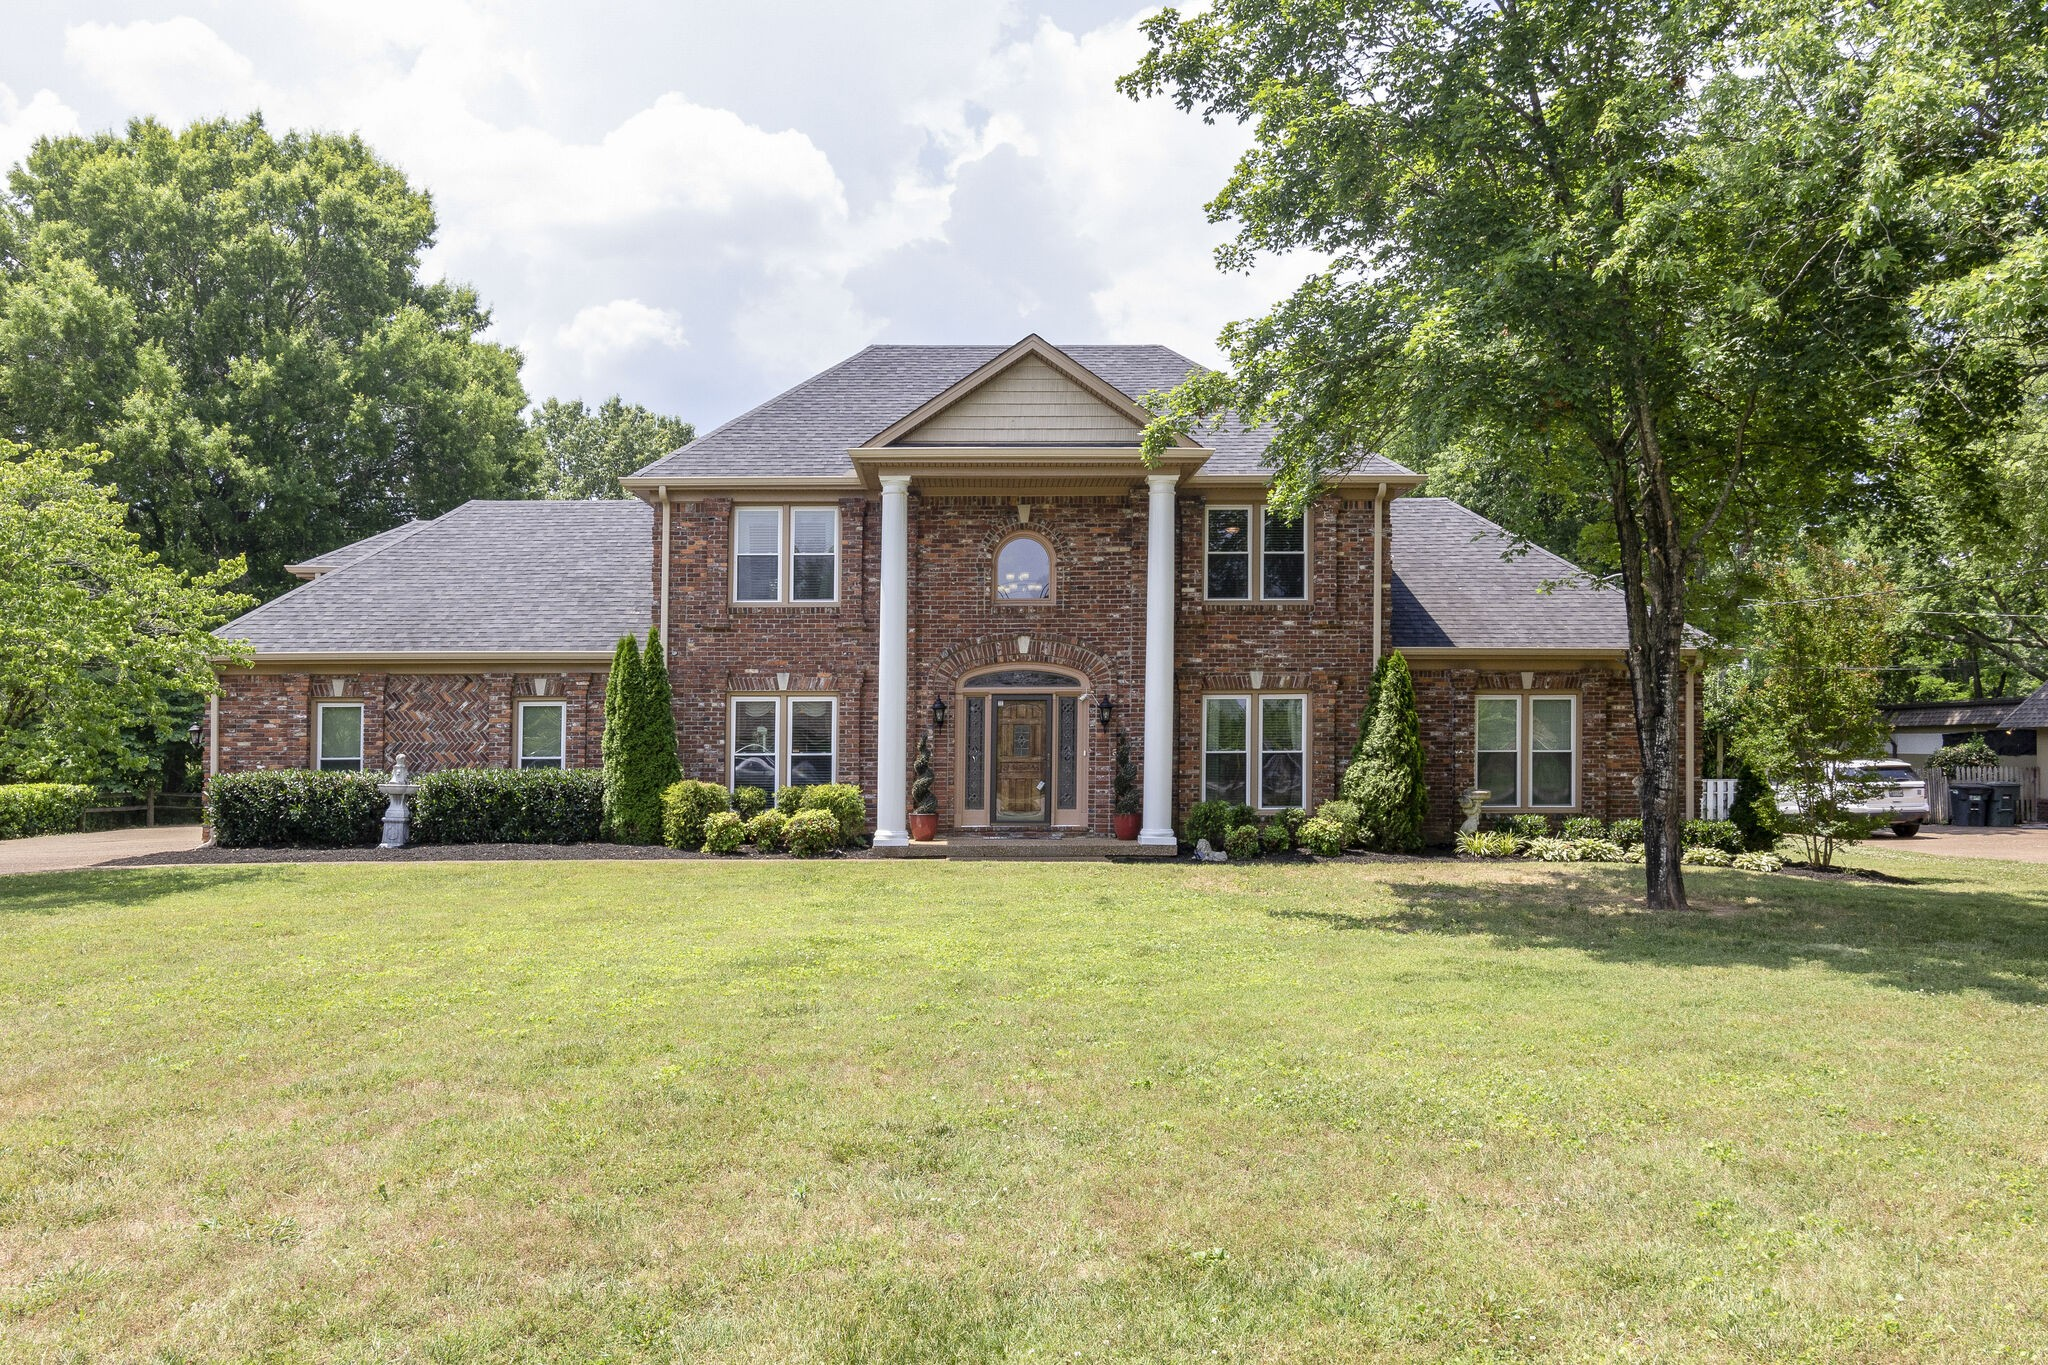 This executive home has all the wow factor! Spacious open floor plan home with large back yard and in-ground pool on nearly an acre lot. Large kitchen w/ walk in pantry, ss appliances, ex-large bar, island. Two master suites, upstairs/ downstairs. Two living rooms with fireplace in each, upstairs and  down, gazebo, in-ground pool w/ diving board, grapevines for privacy, and covered porch, bonus room over garage, formal dining room, large kitchen with pantry, and a spiral staircase in foyer.